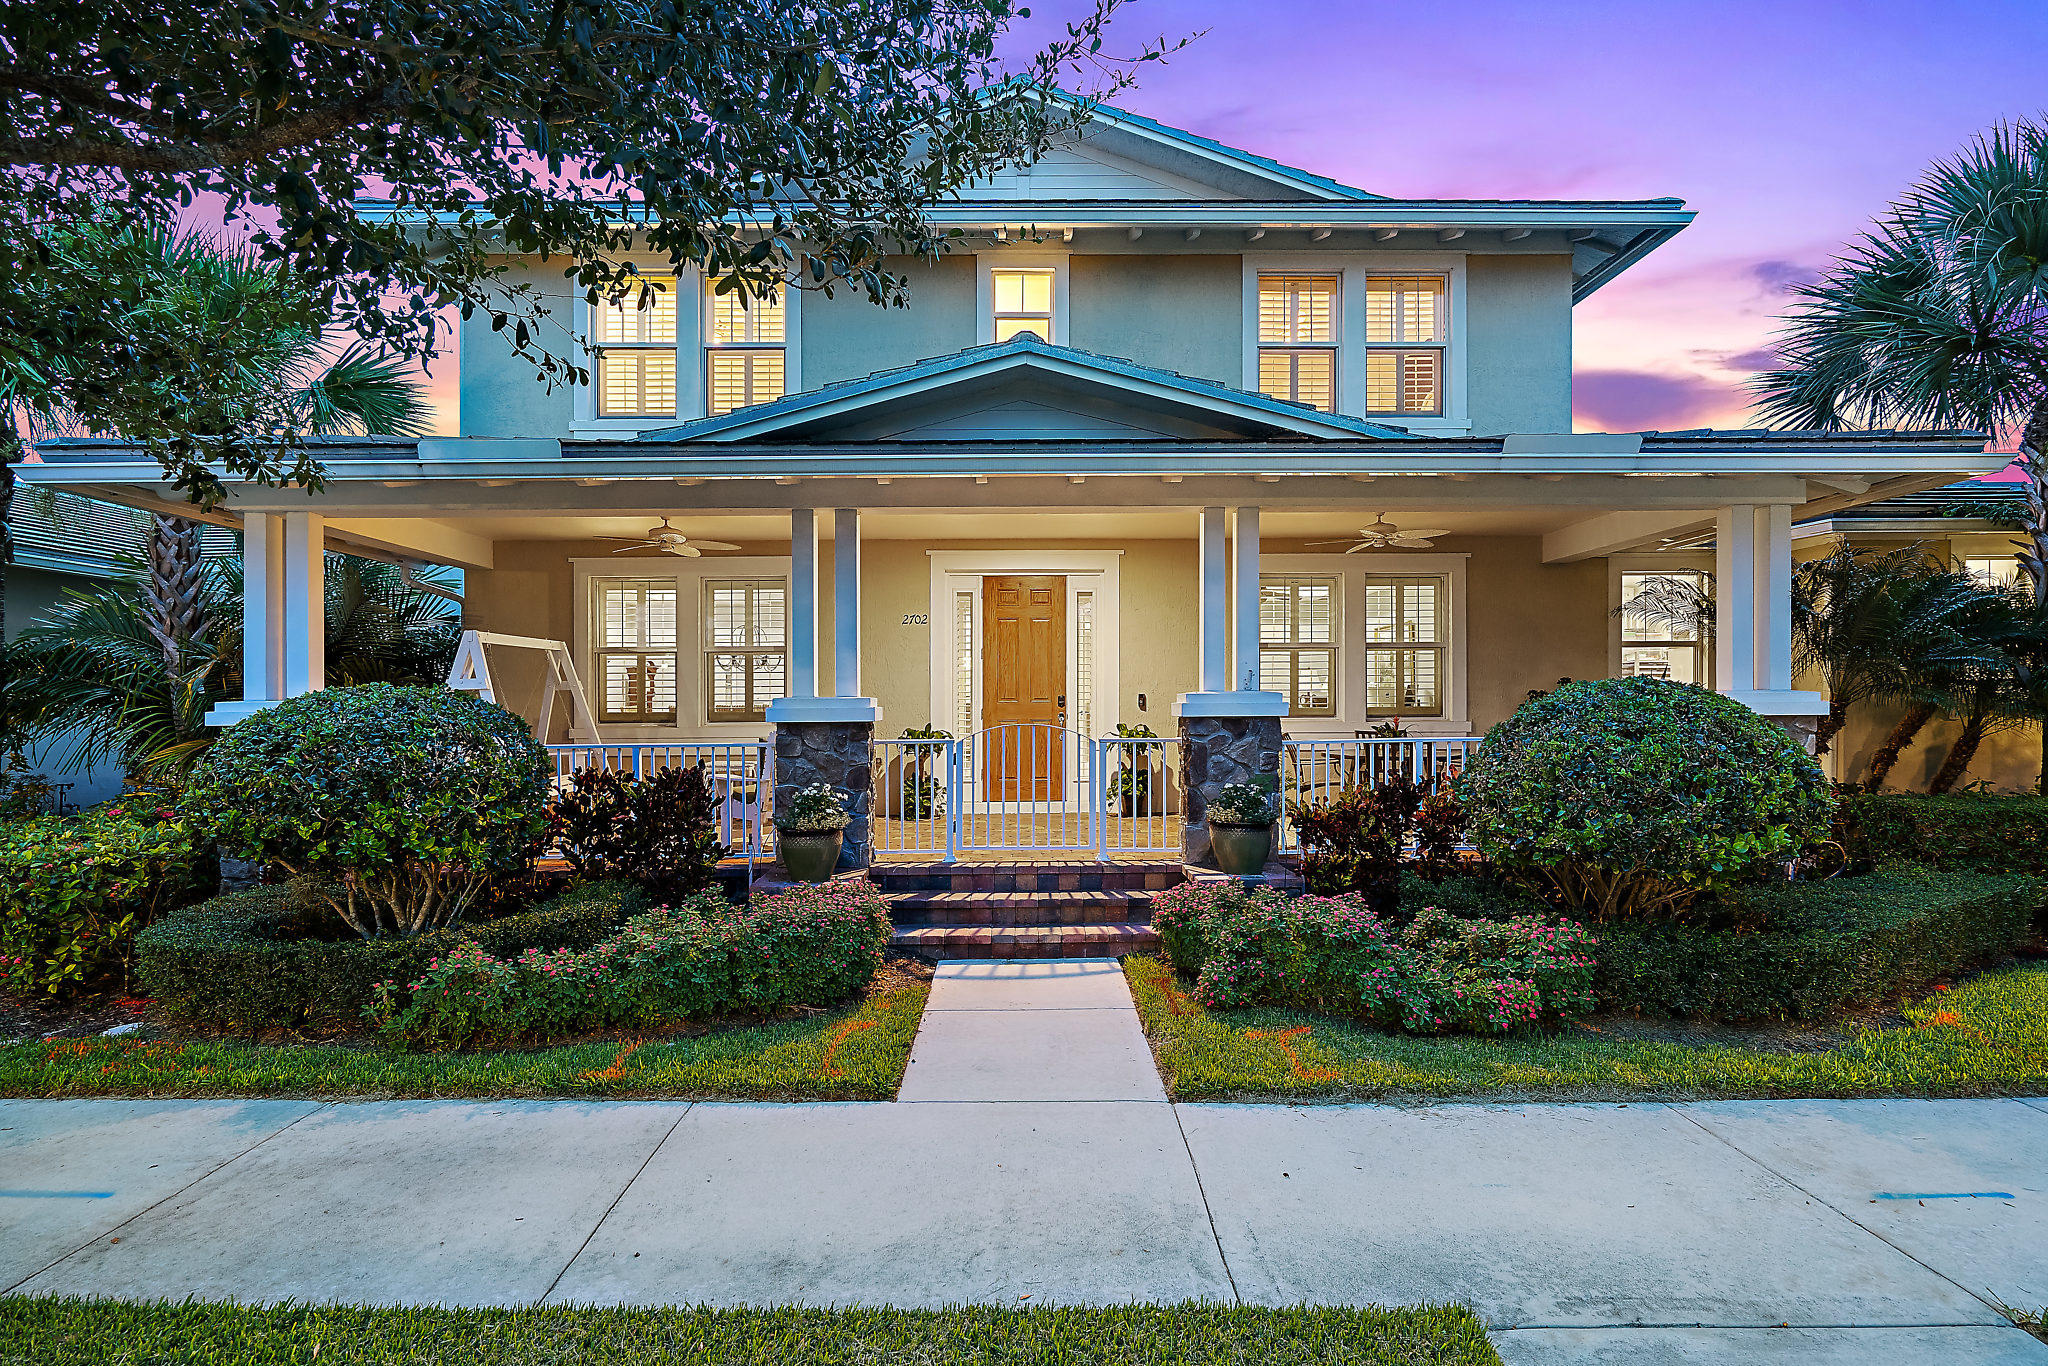 New Home for sale at 2702 Mallory Boulevard in Jupiter